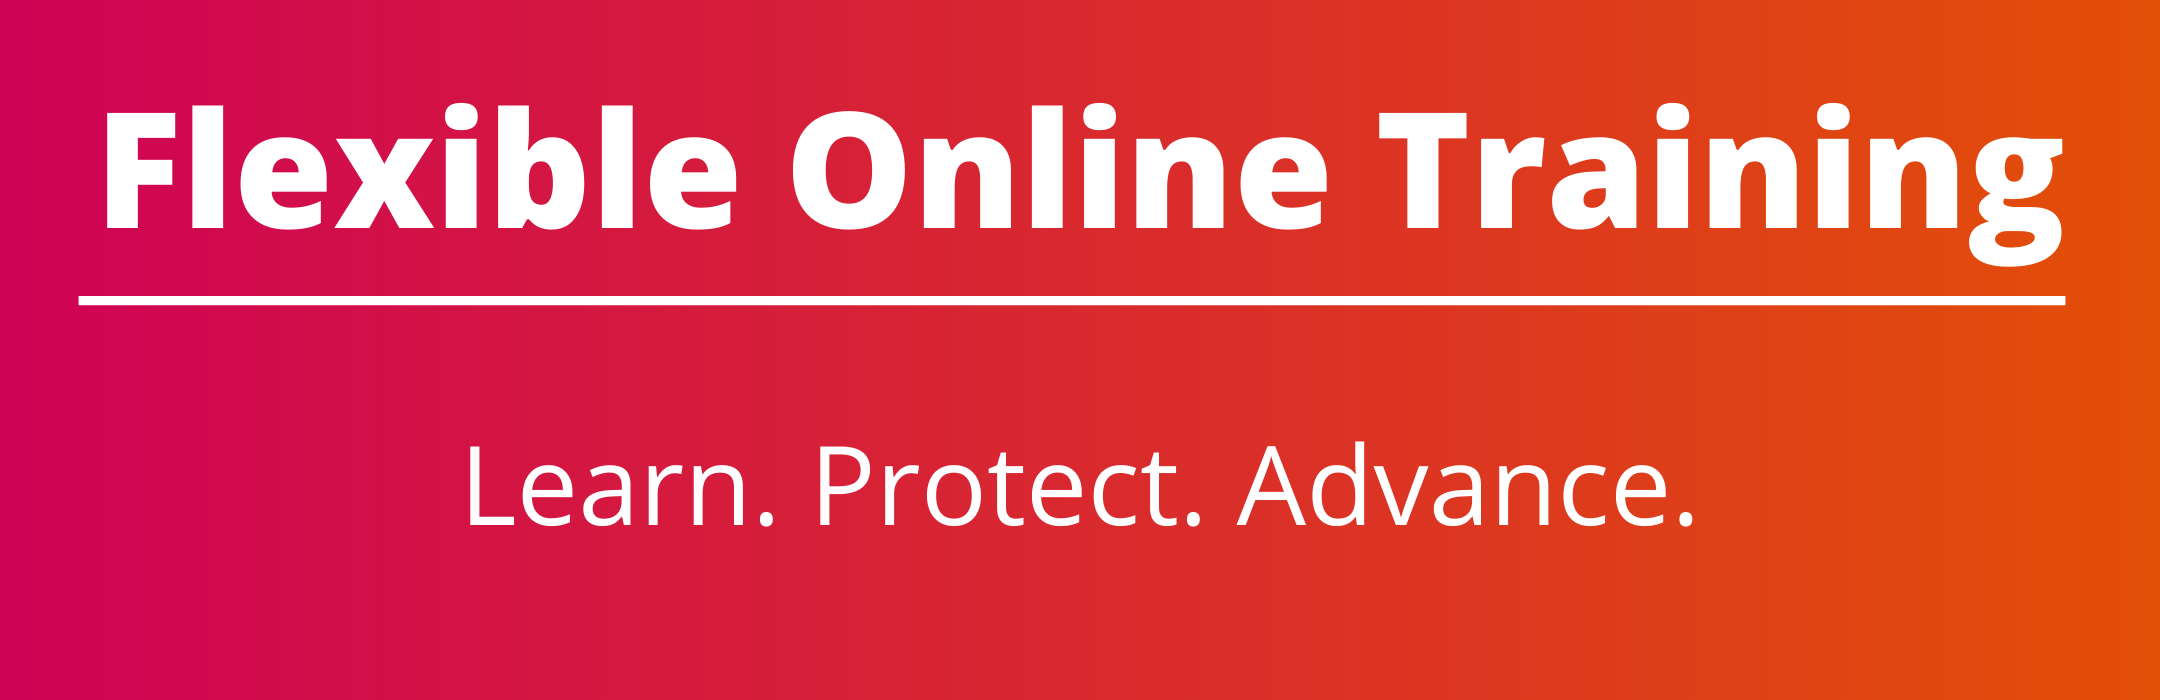 Flexible Online Training. Learn. Protect. Advance.